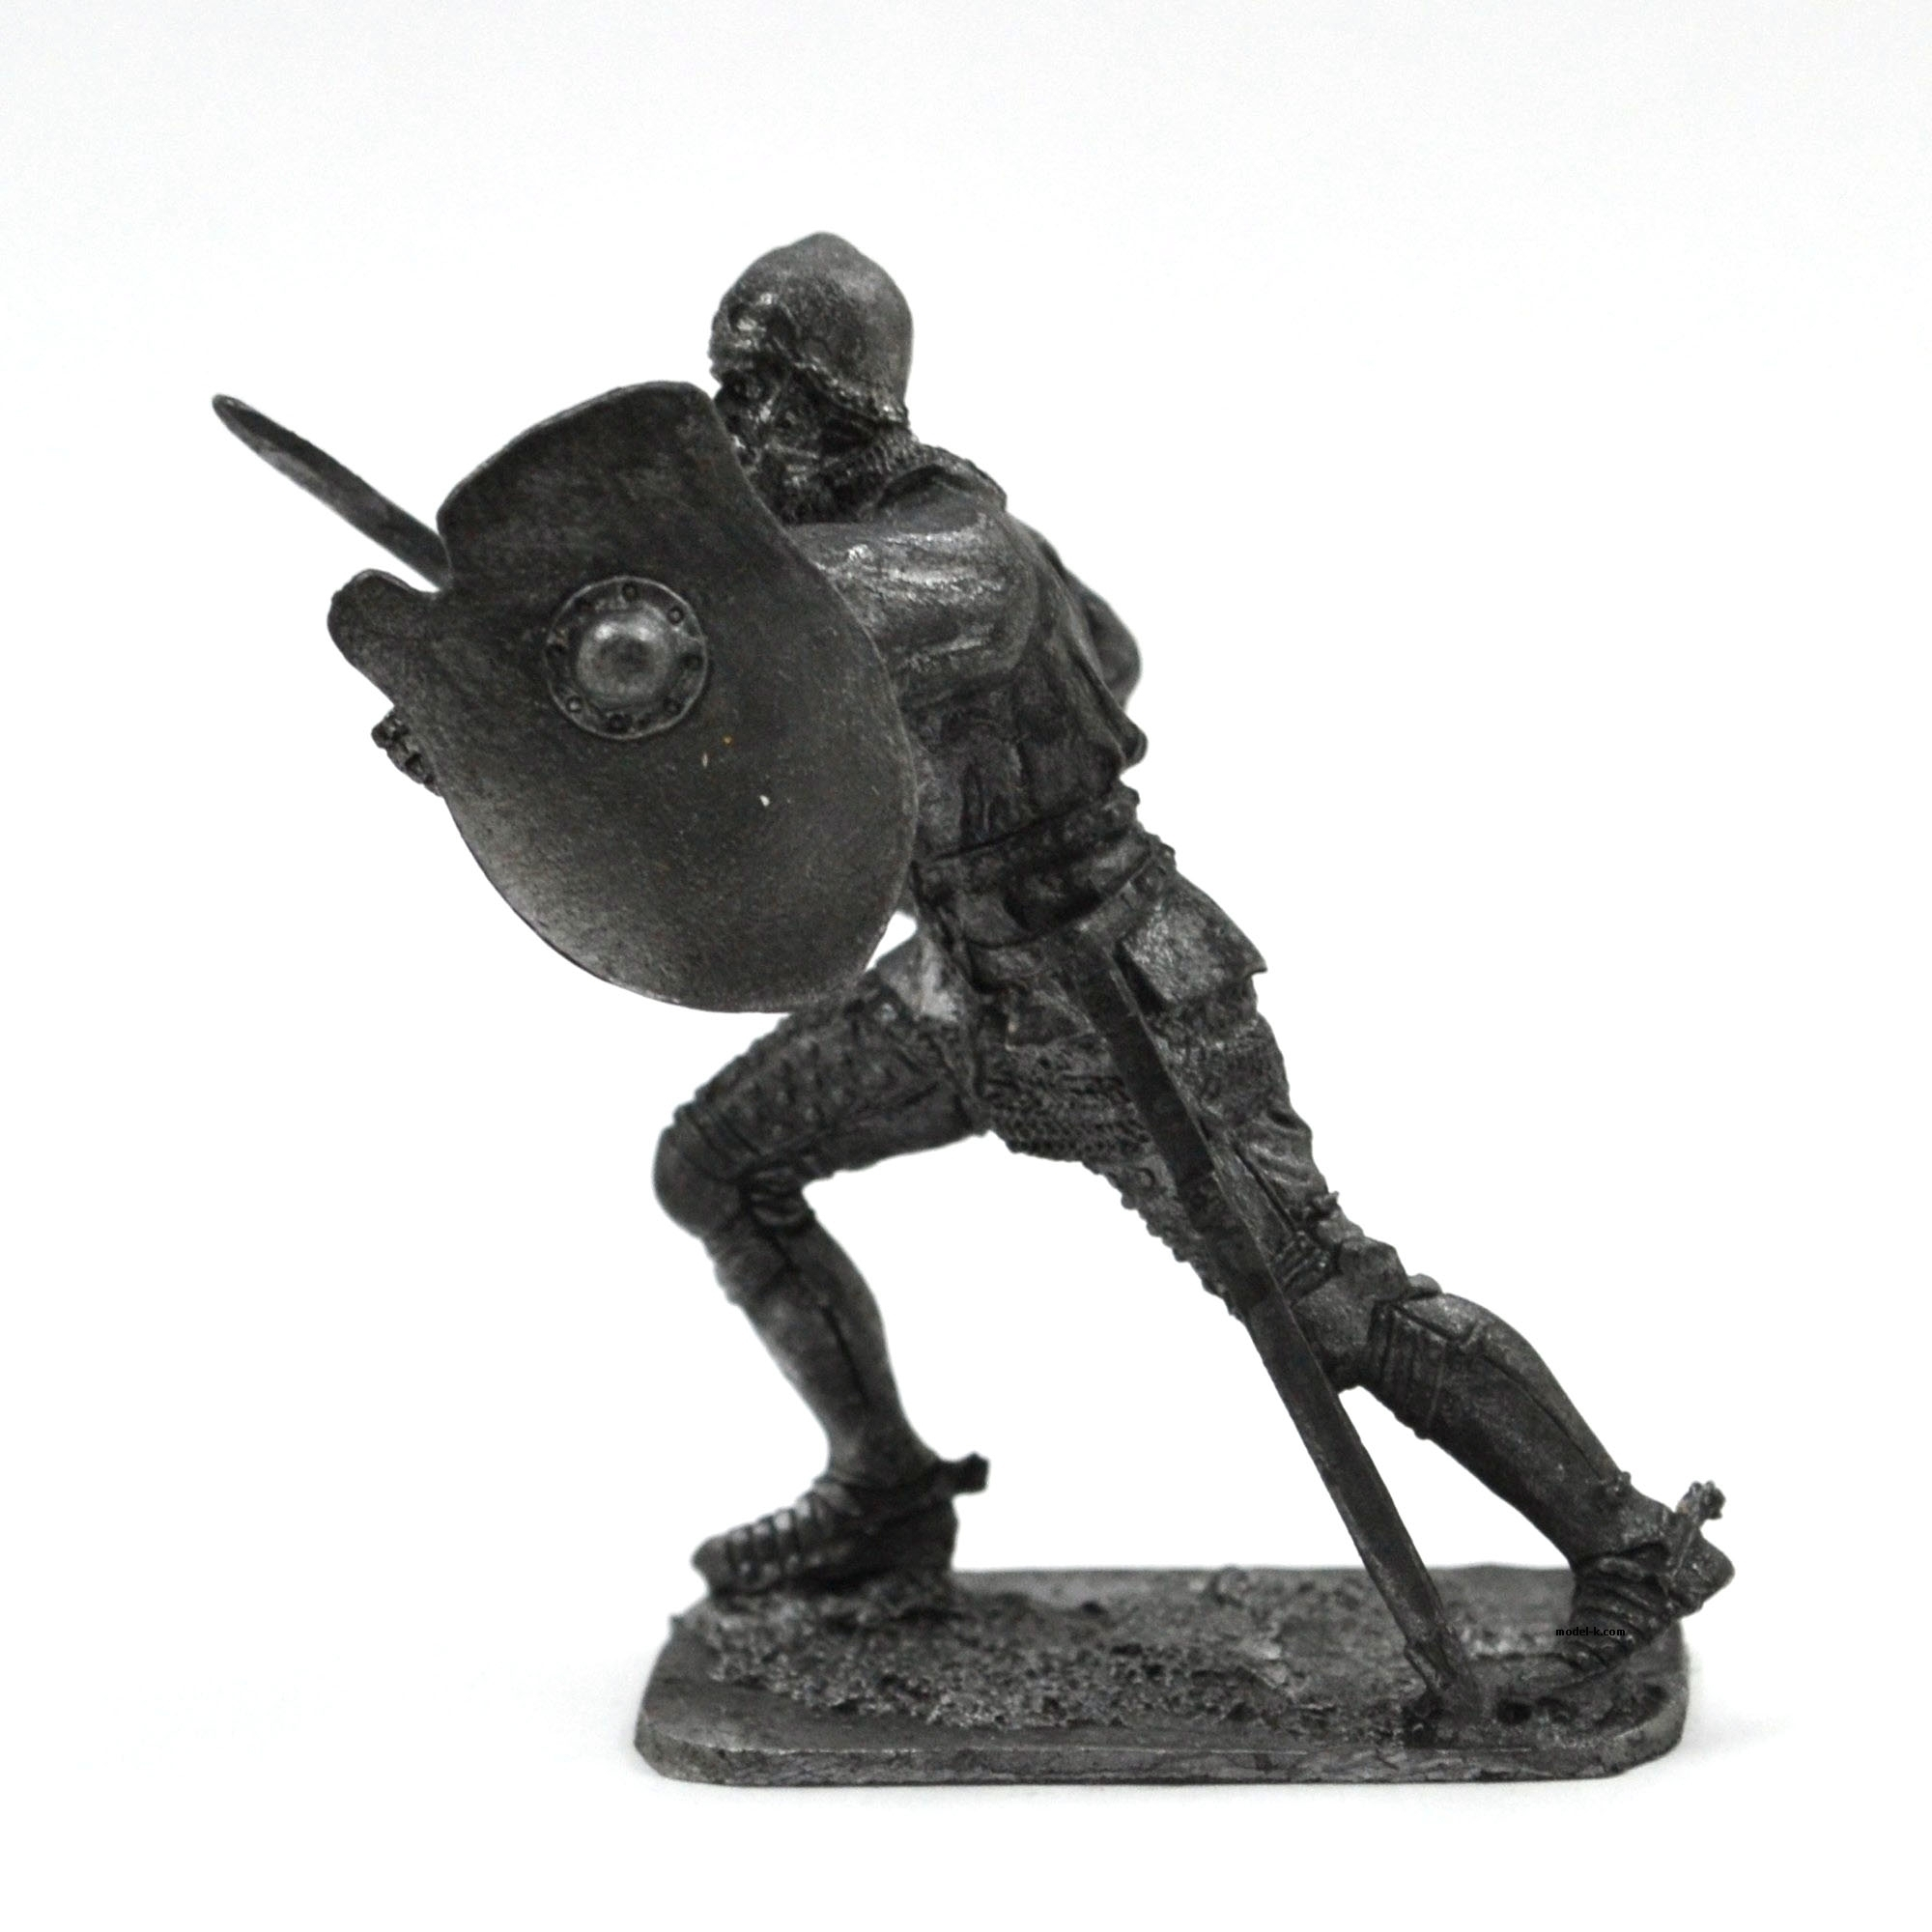 54mm tin soldier Medieval knight